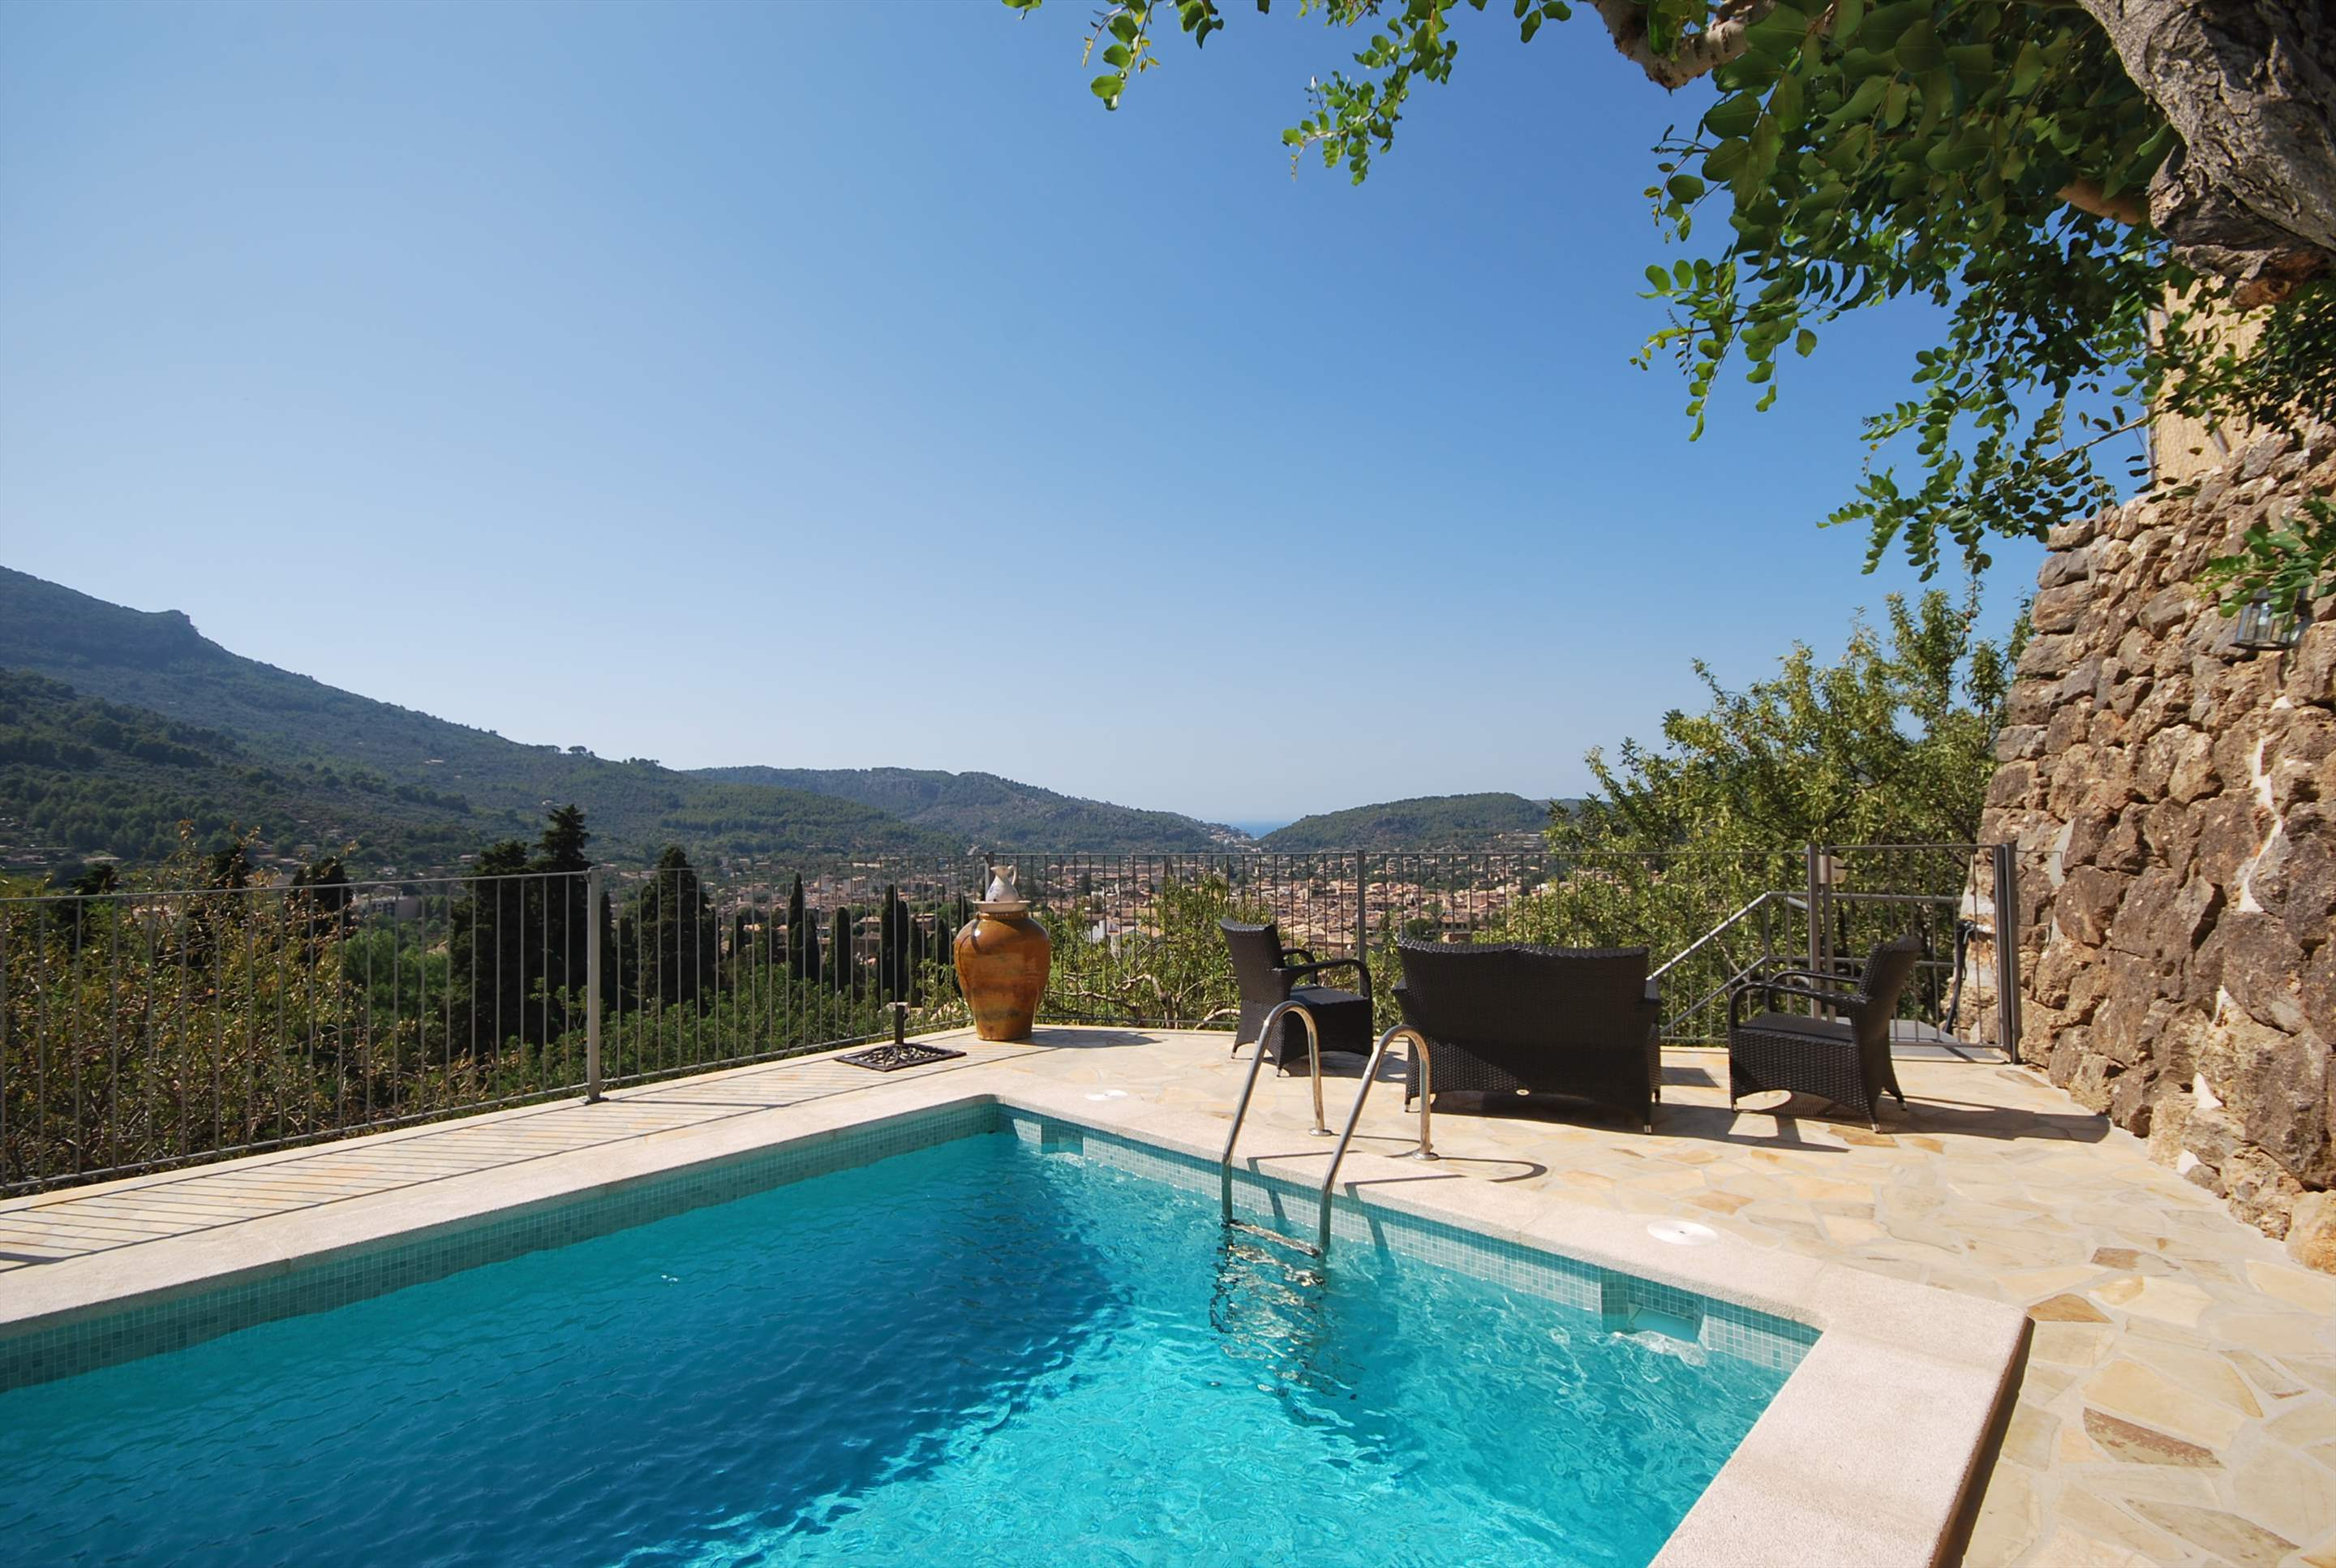 Casa Tres Cruces - SO1797, 3 bedroom villa in Soller & Deia, Majorca Photo #15